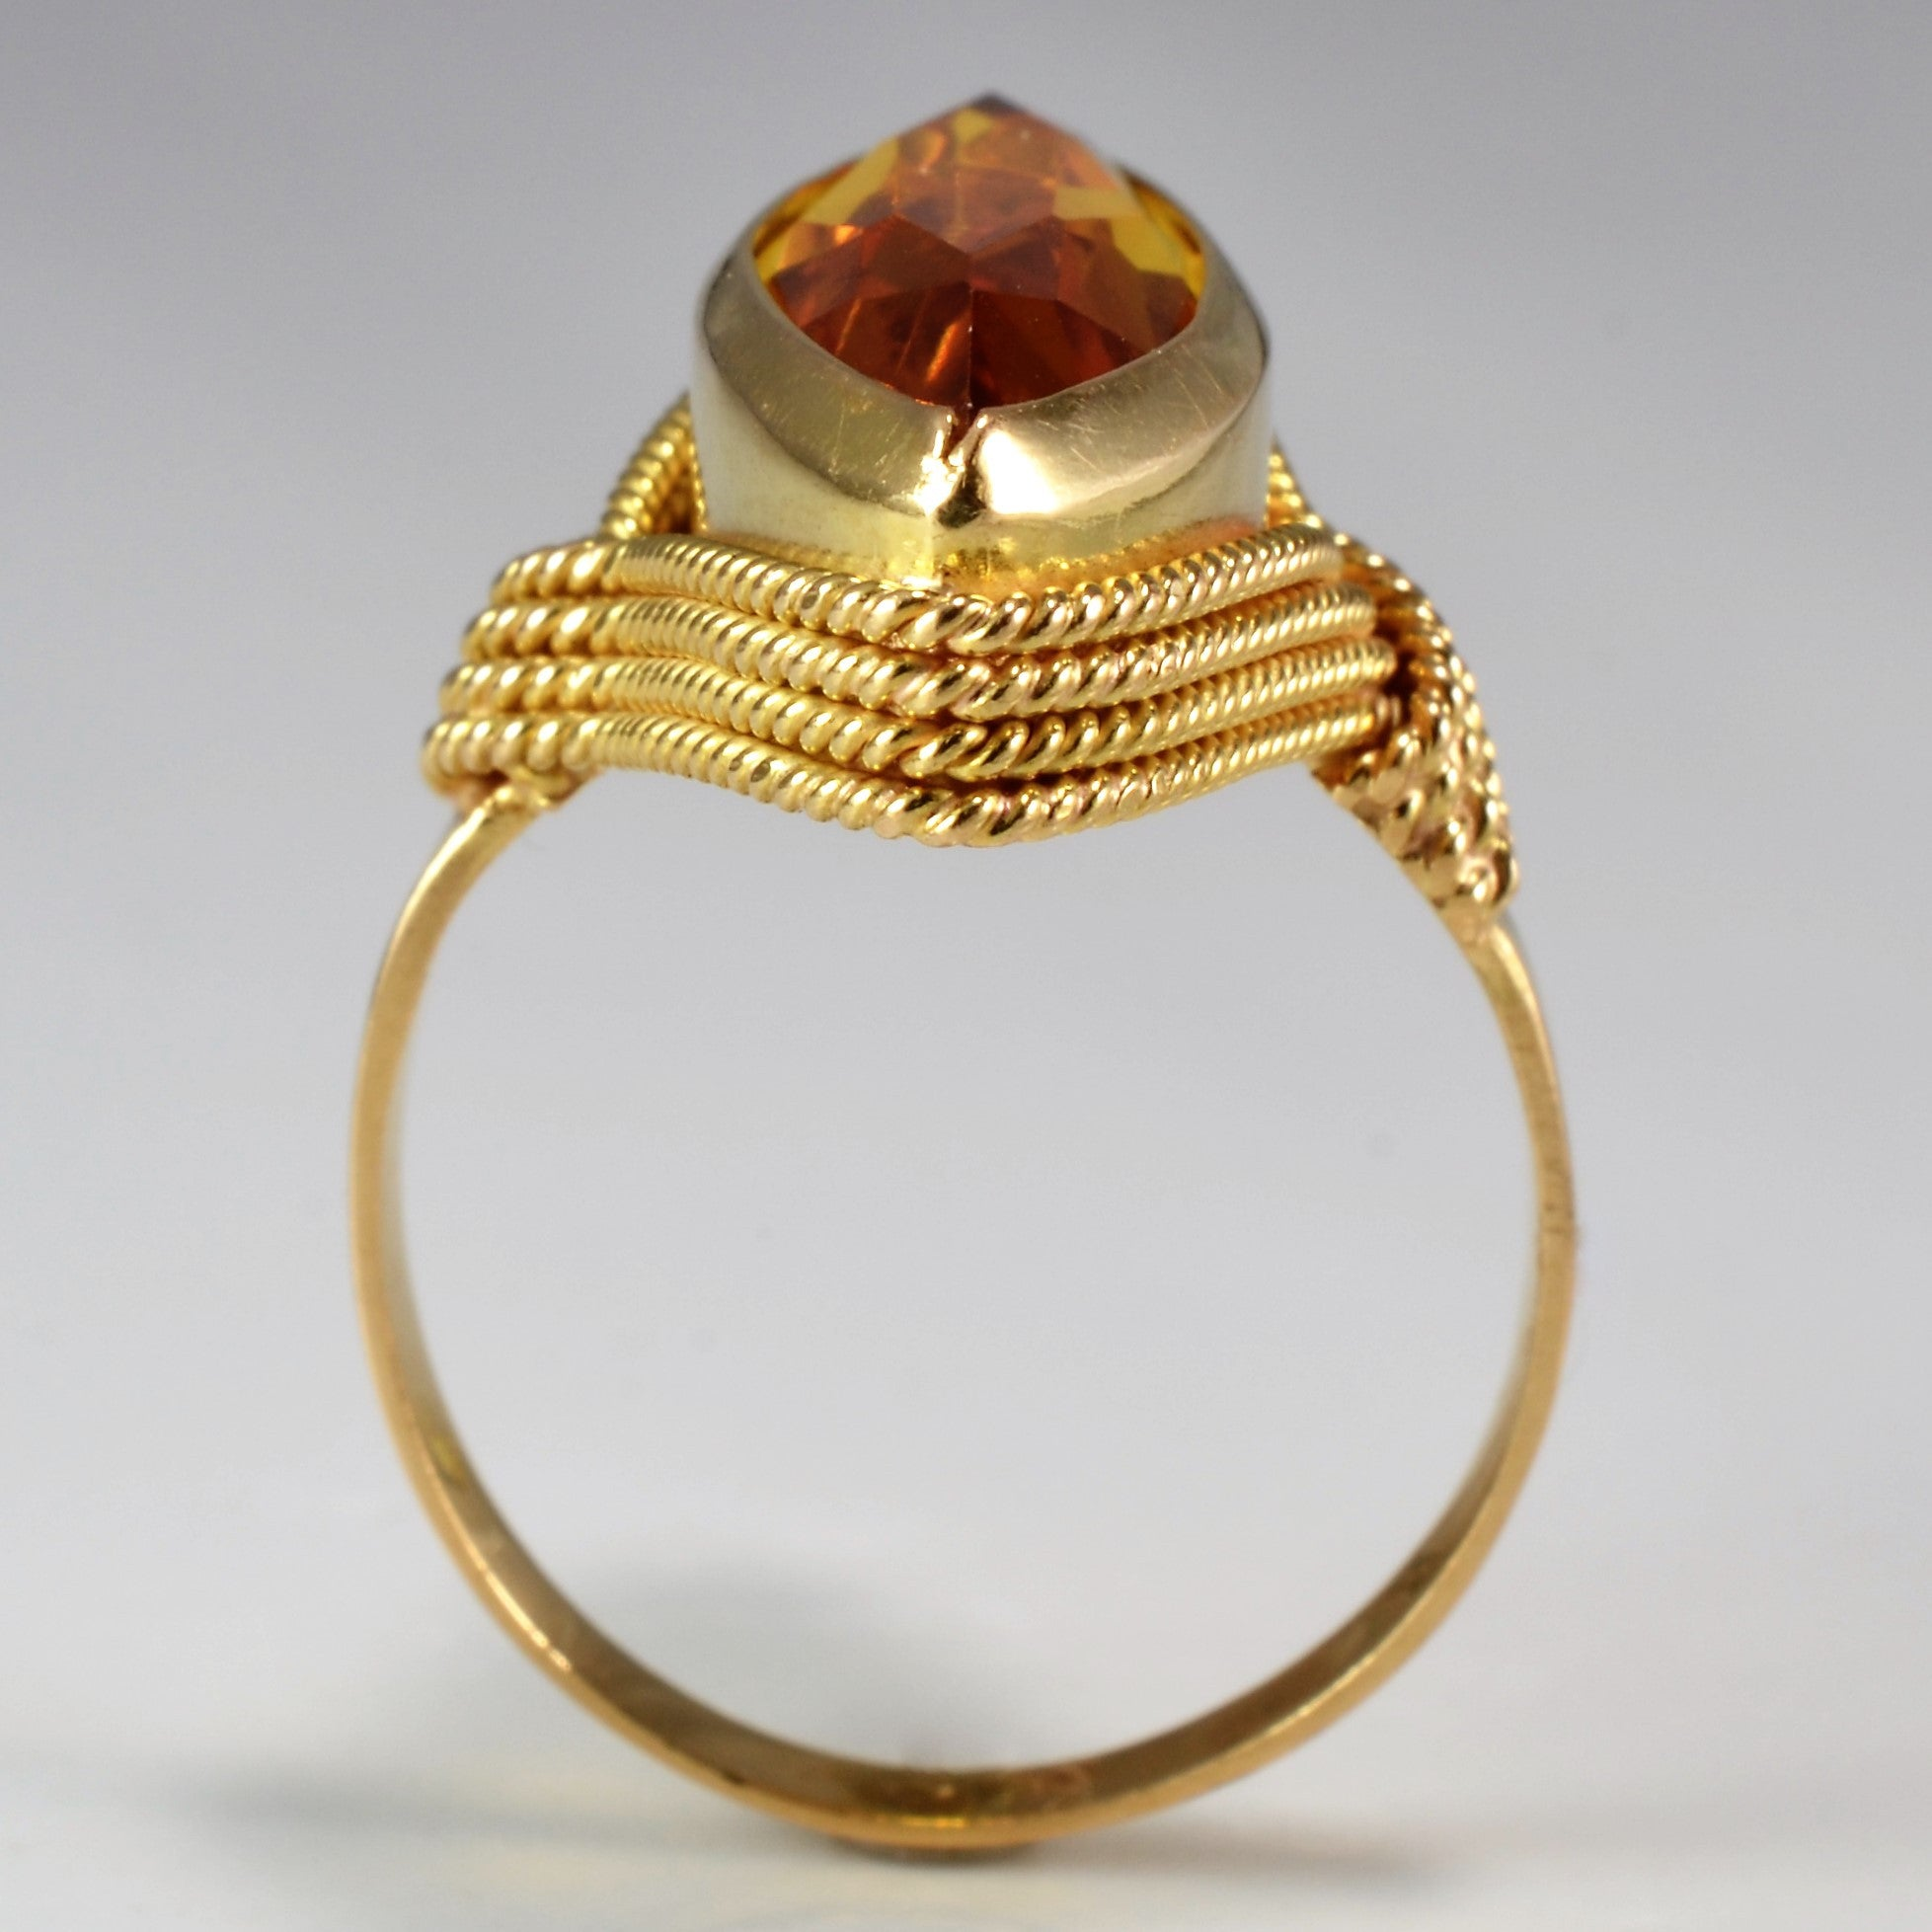 Marquise Cut Hessonite Garnet Ring | SZ 6.75 |